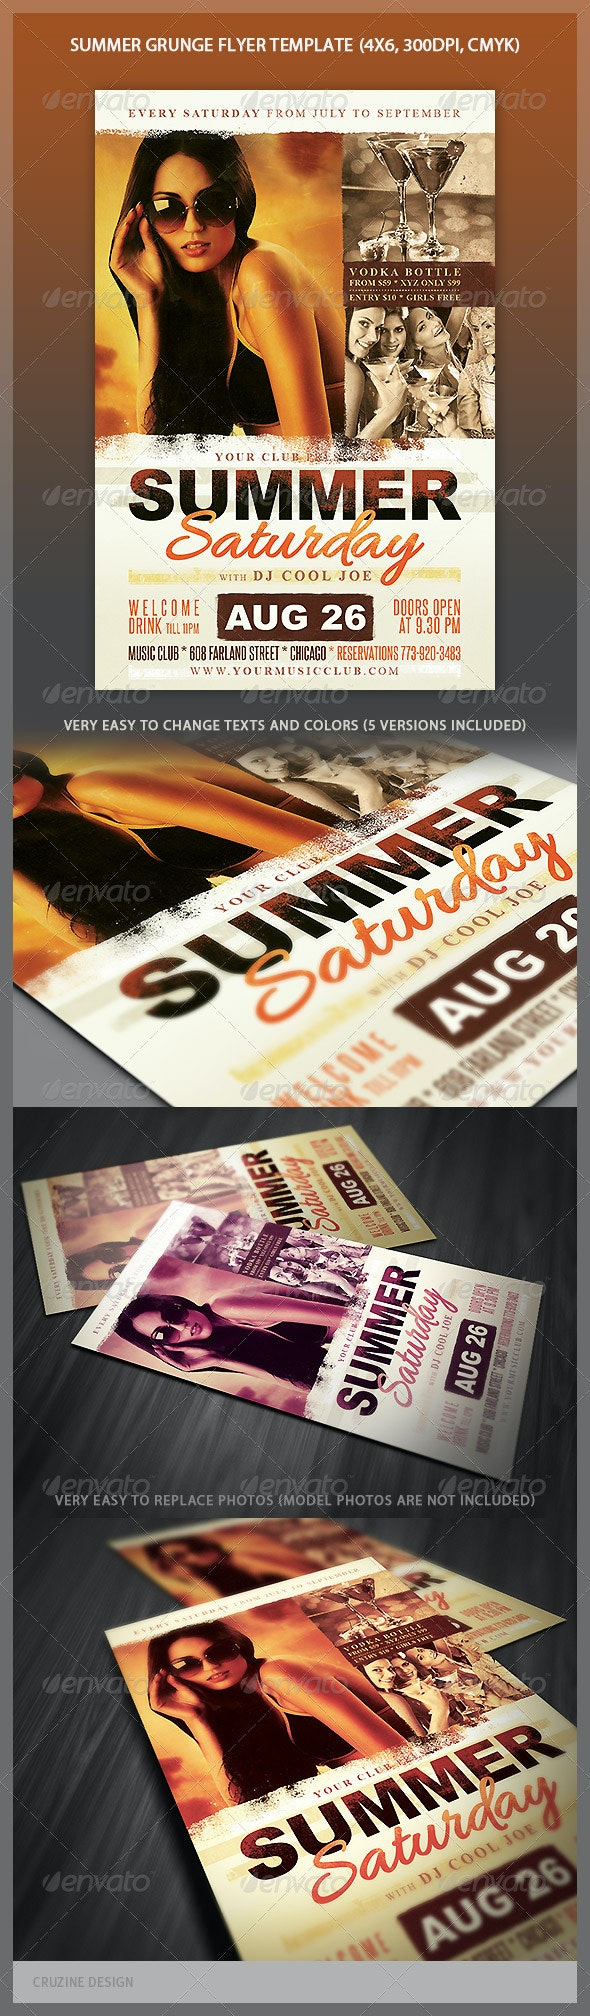 Summer Grunge Party Flyer - Events Flyers